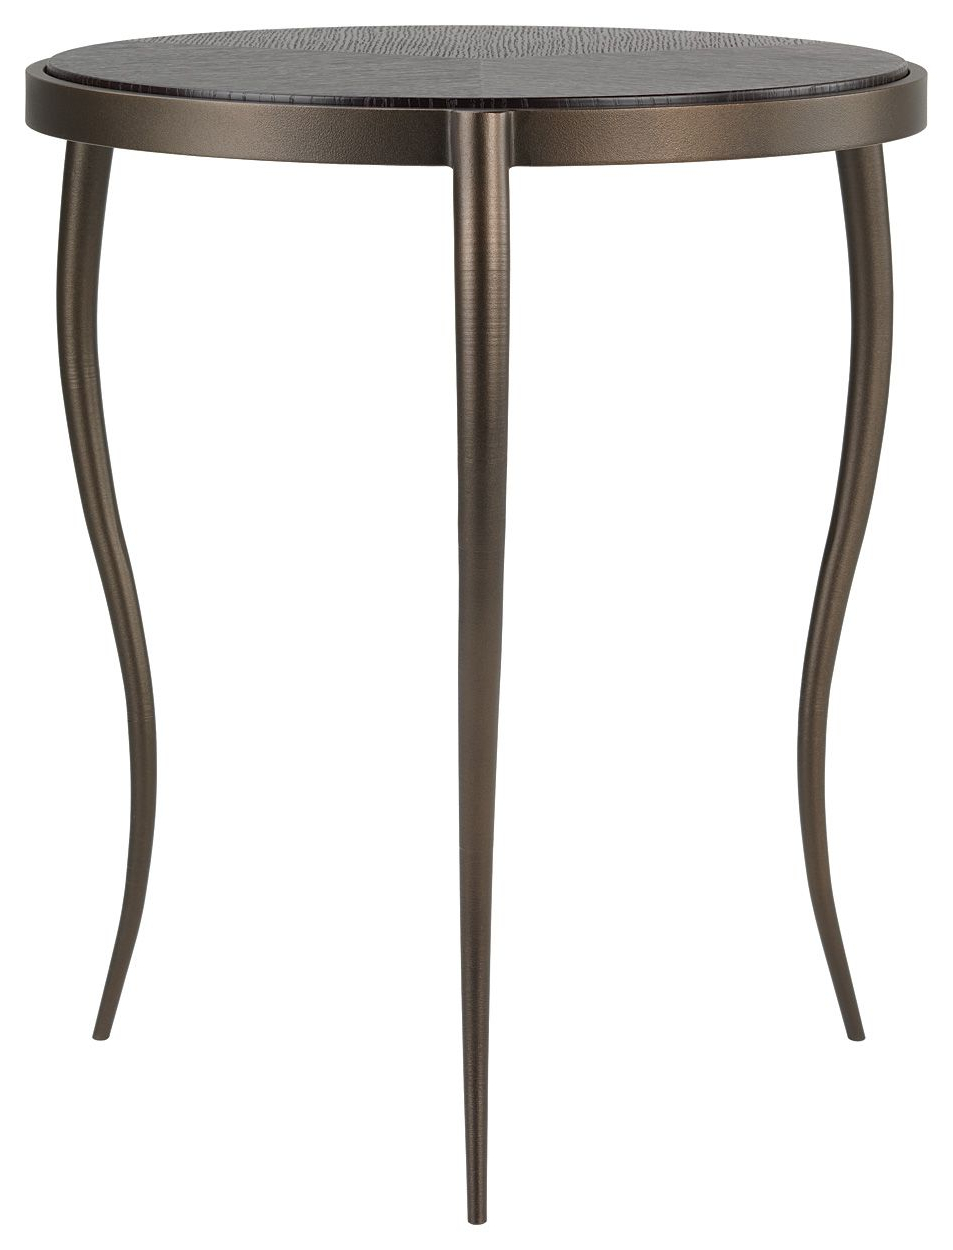 Smoked Oak Side Tables For Most Recent Brinkley Side Table In Textured Bronze With A Dark Smoked Oak Top (View 15 of 20)